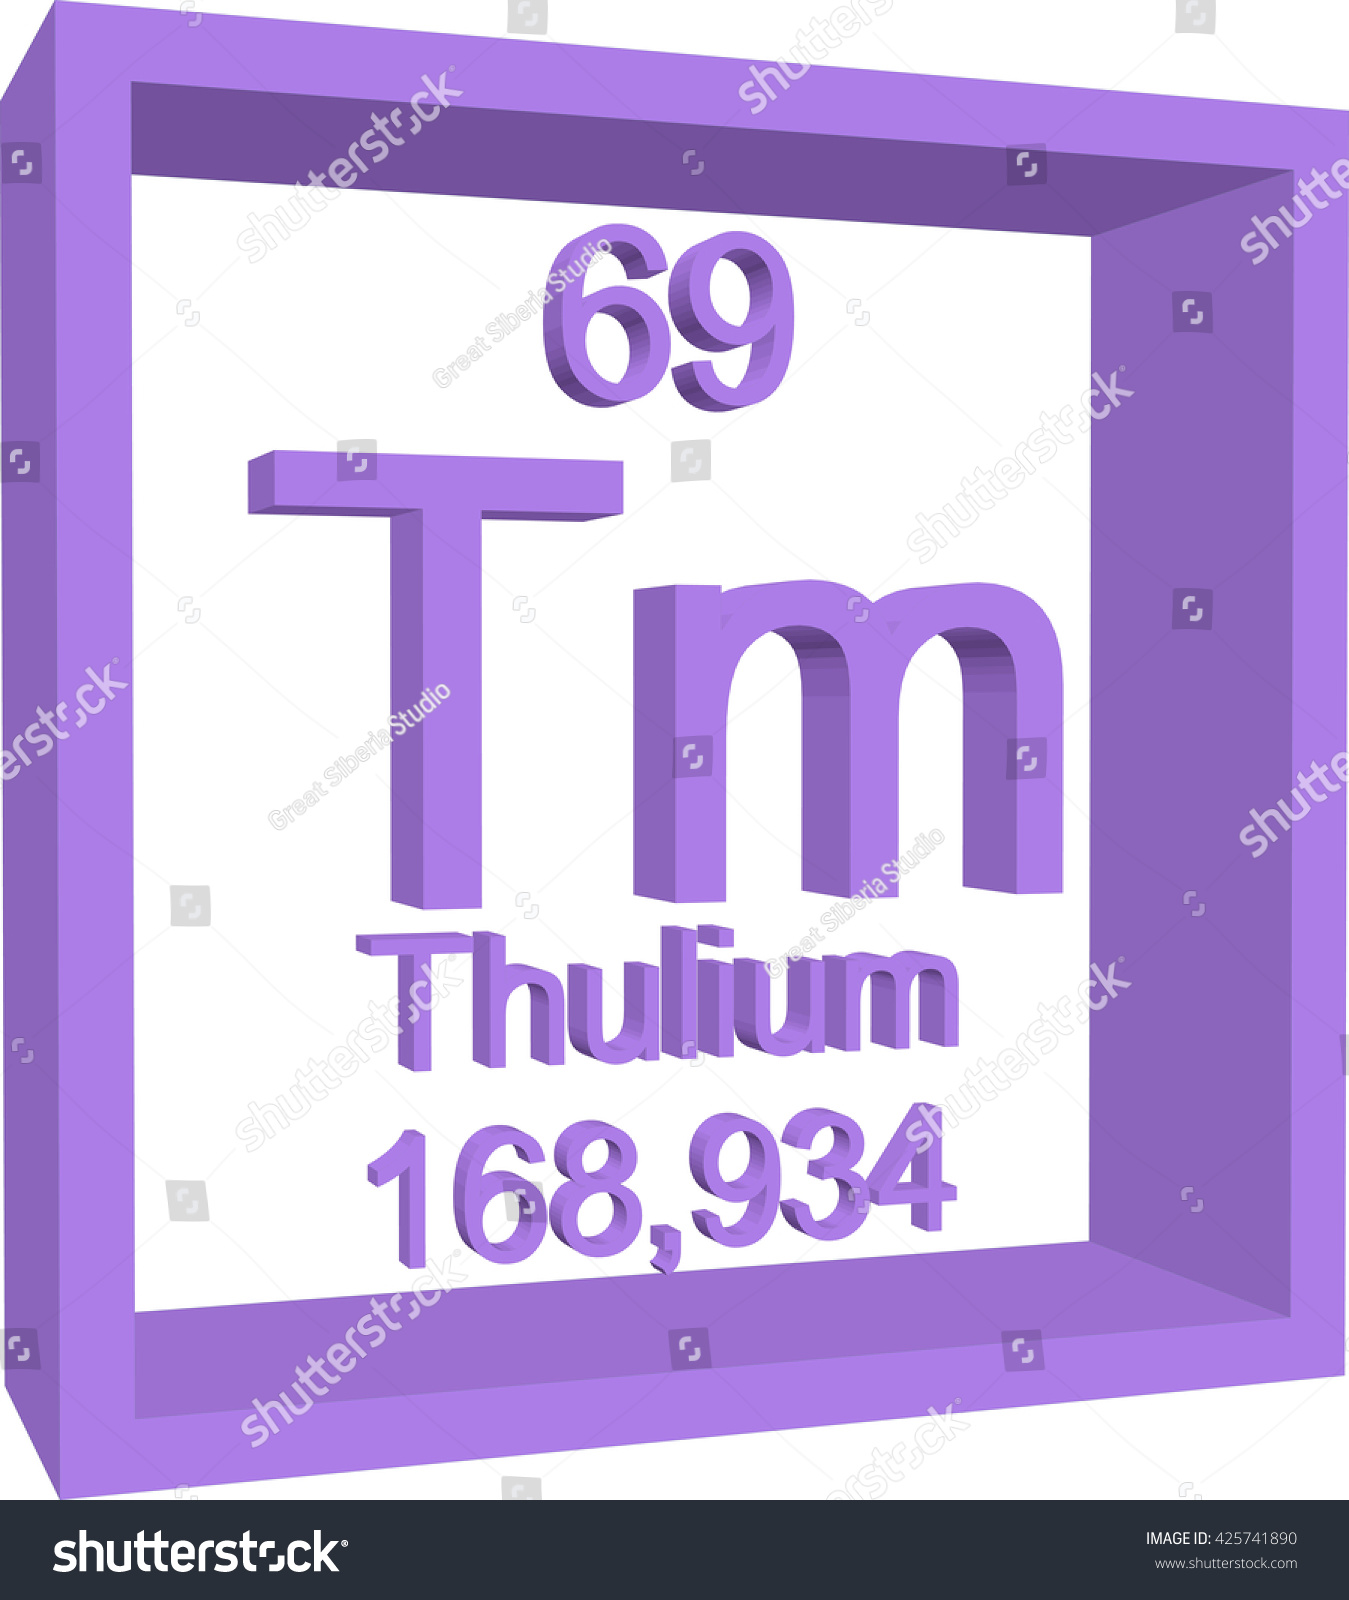 Periodic table elements thulium stock vector 425741890 shutterstock periodic table of elements thulium gamestrikefo Gallery